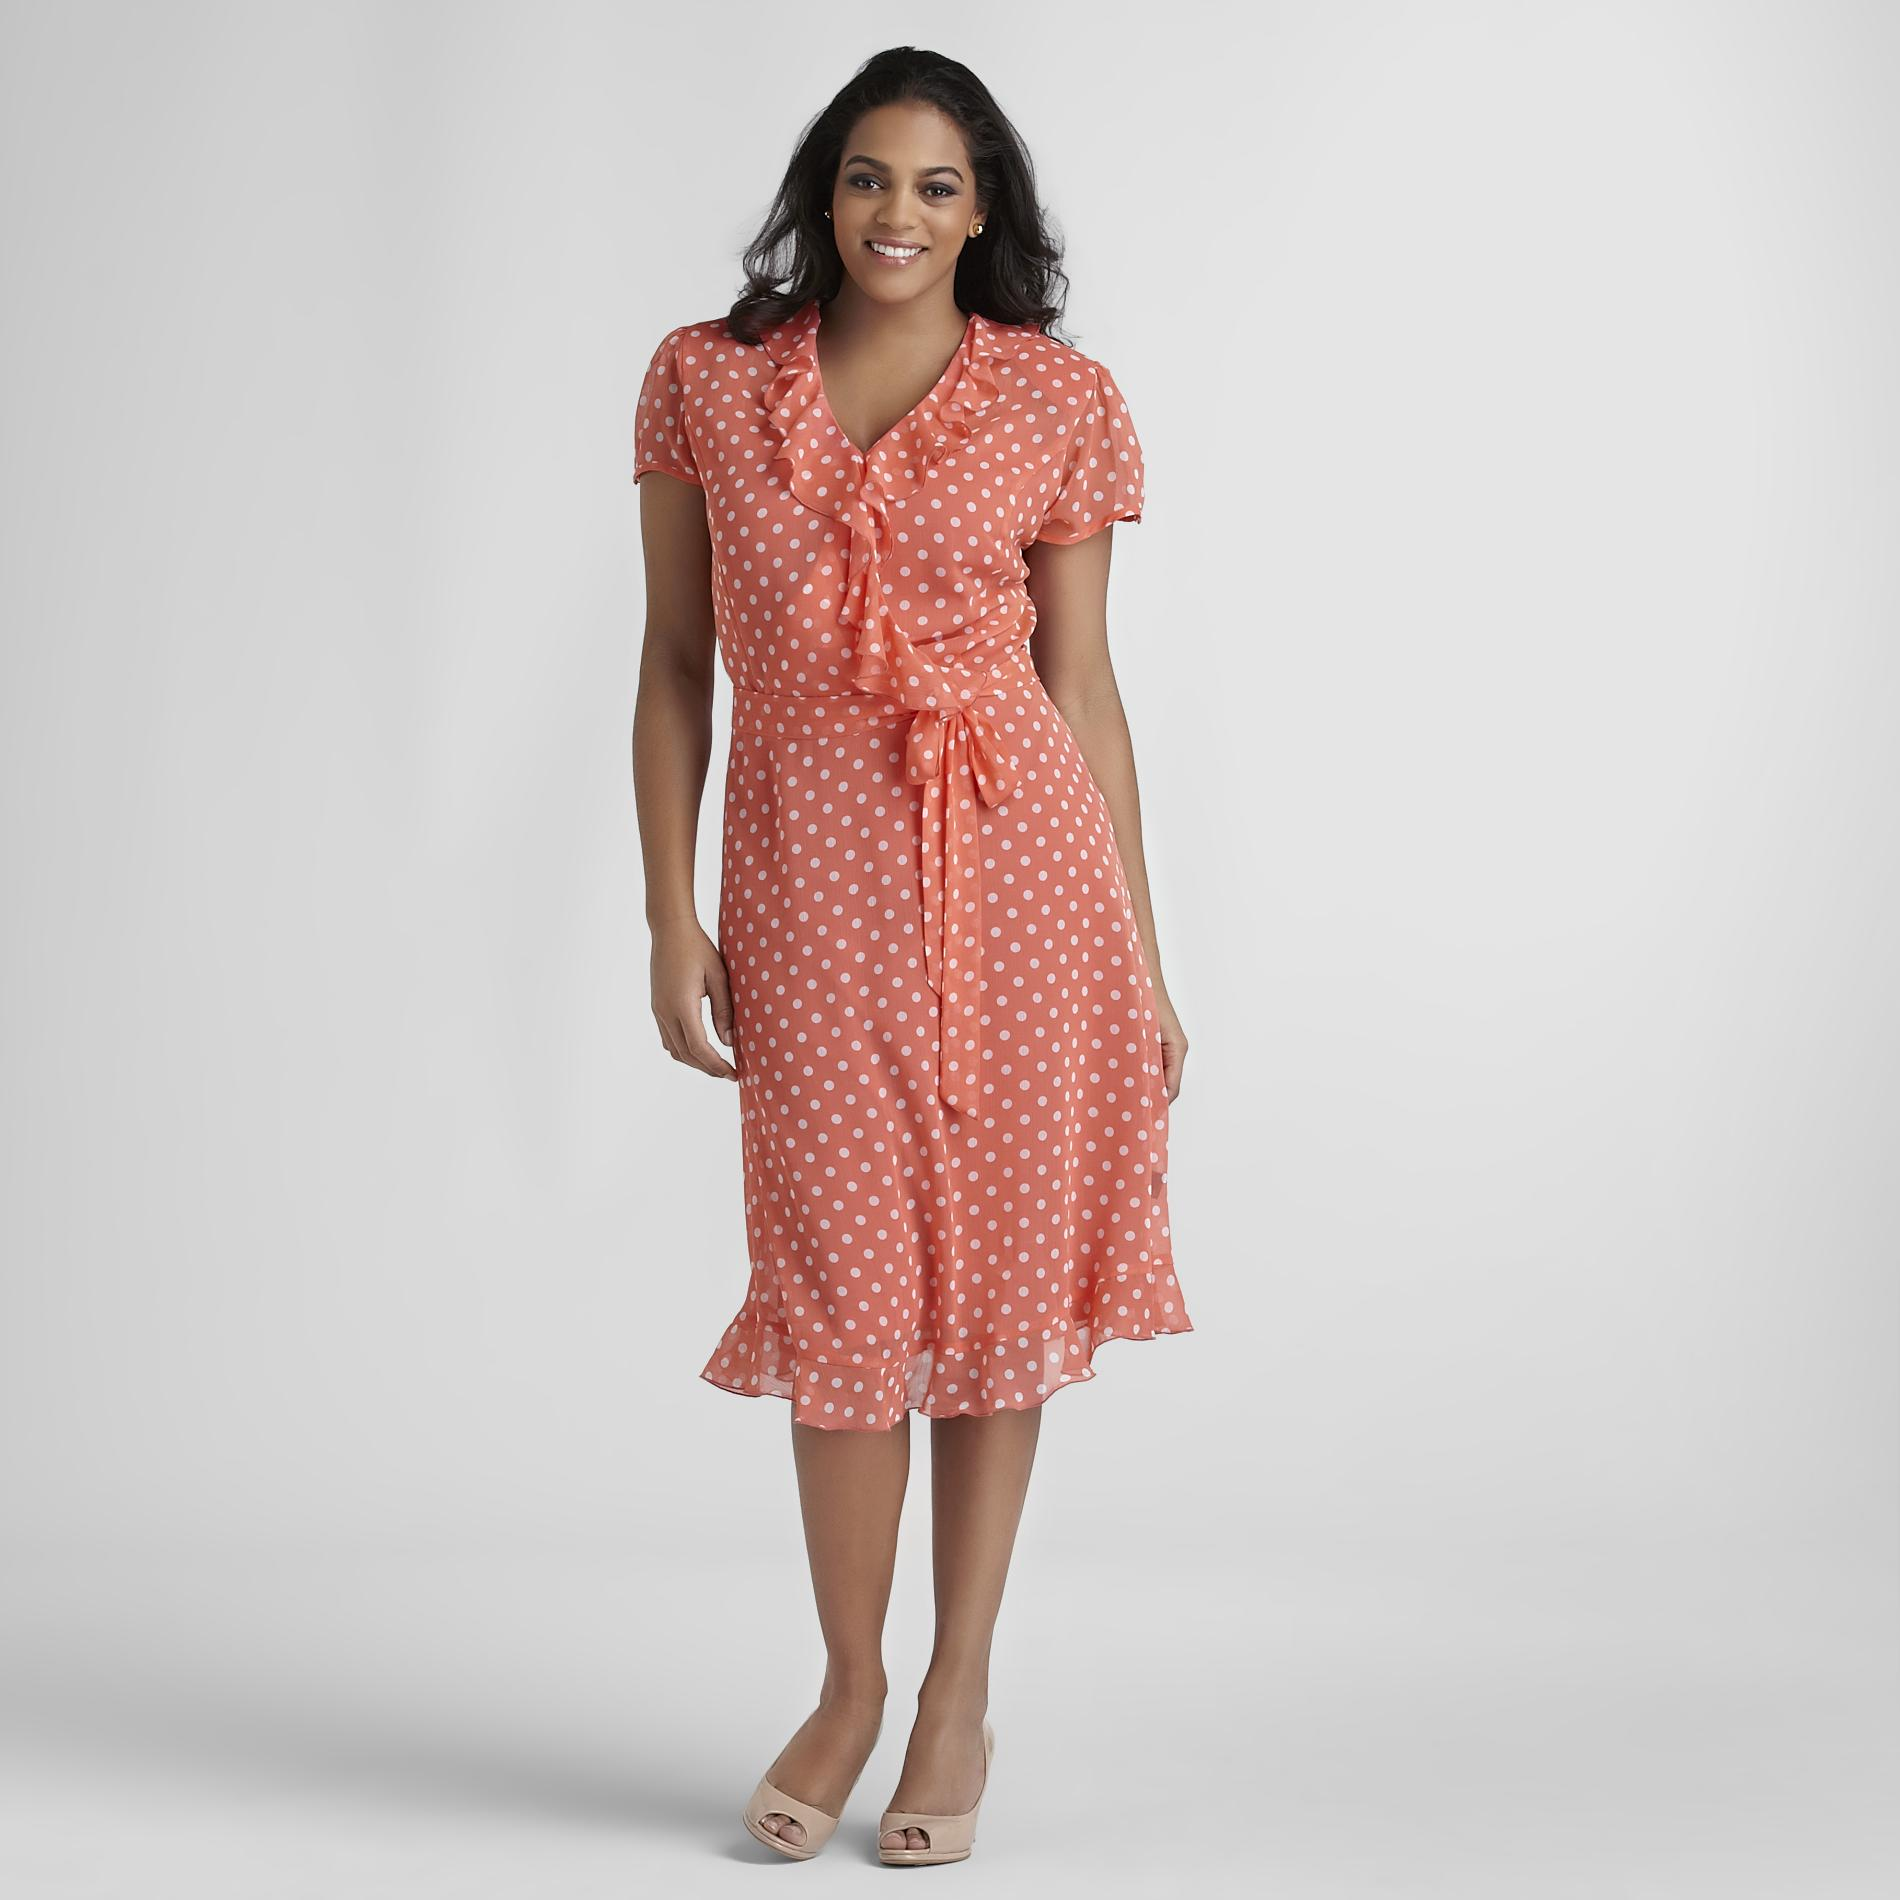 JBS Women's Plus Faux-Wrap Dress & Belt at Kmart.com